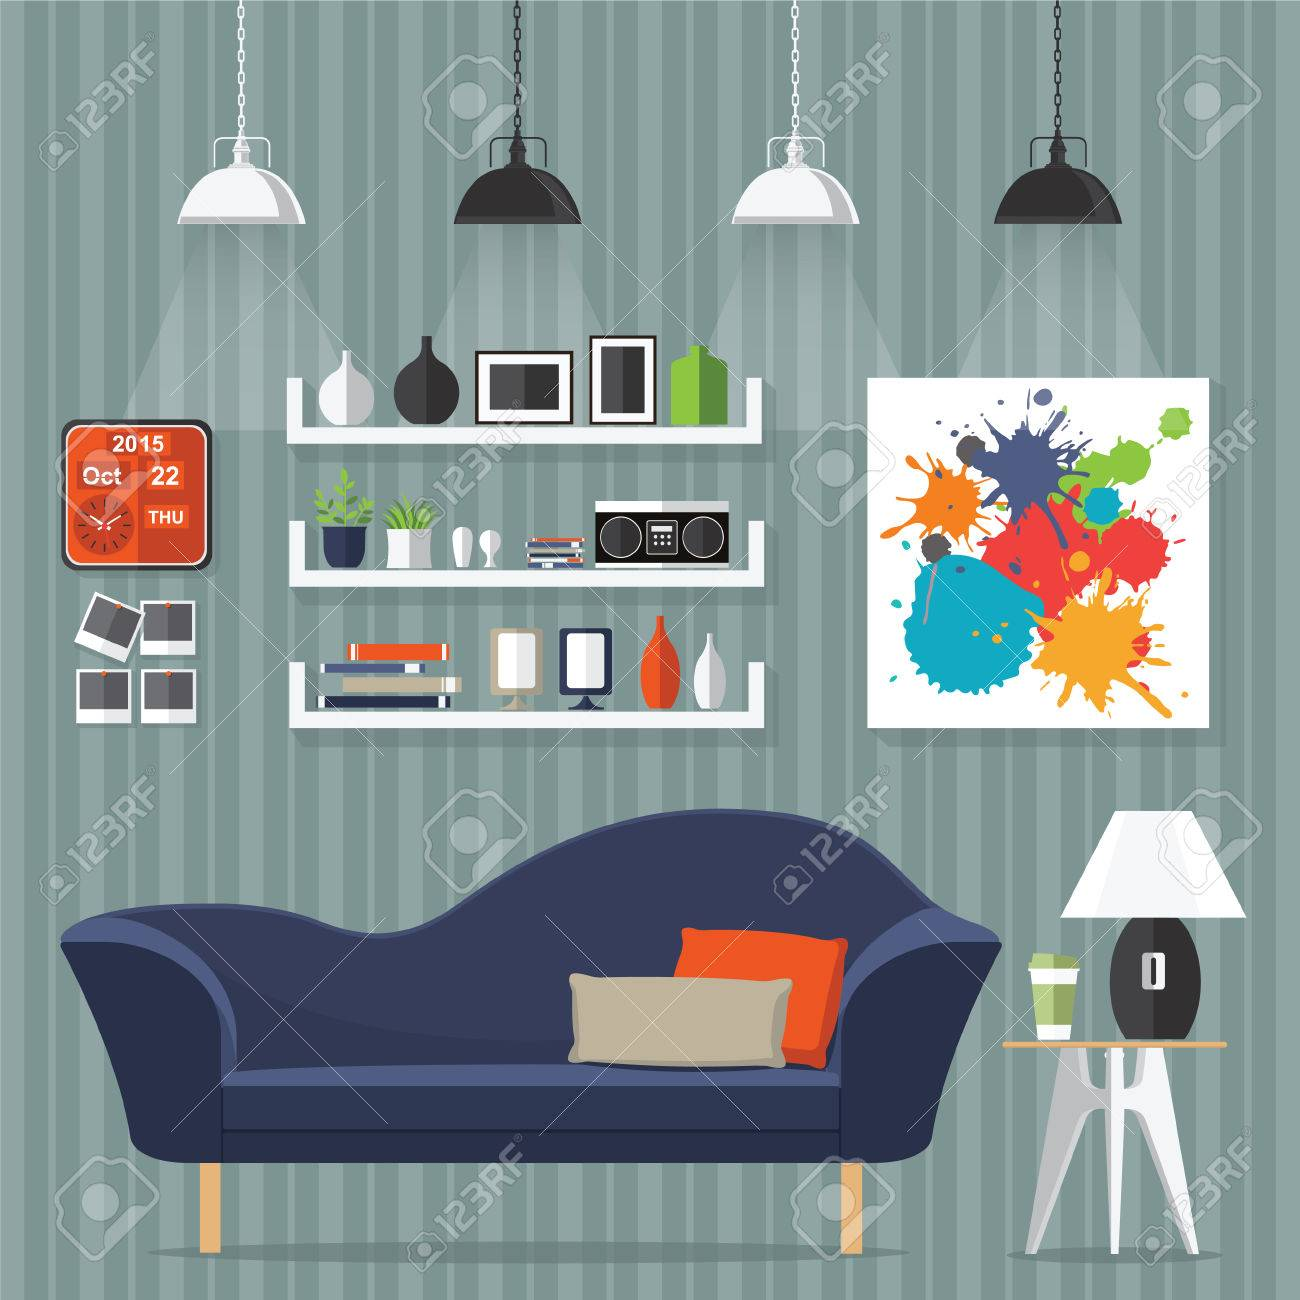 Interior living room with sofa, clock, shelf with books and a Flat style vector illustration. - 53612481